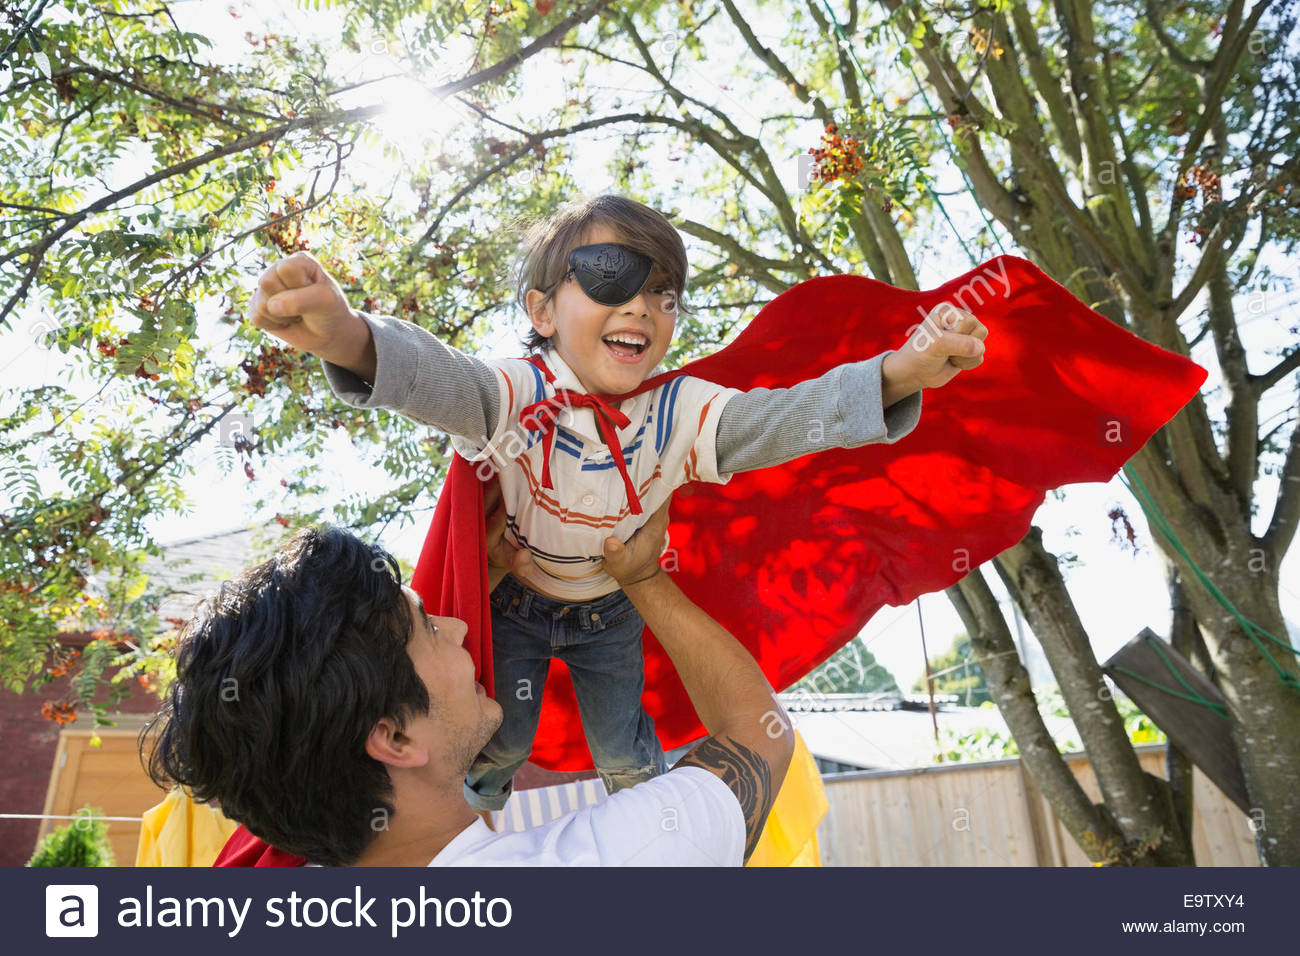 Father flying son in superhero cape overhead - Stock Image